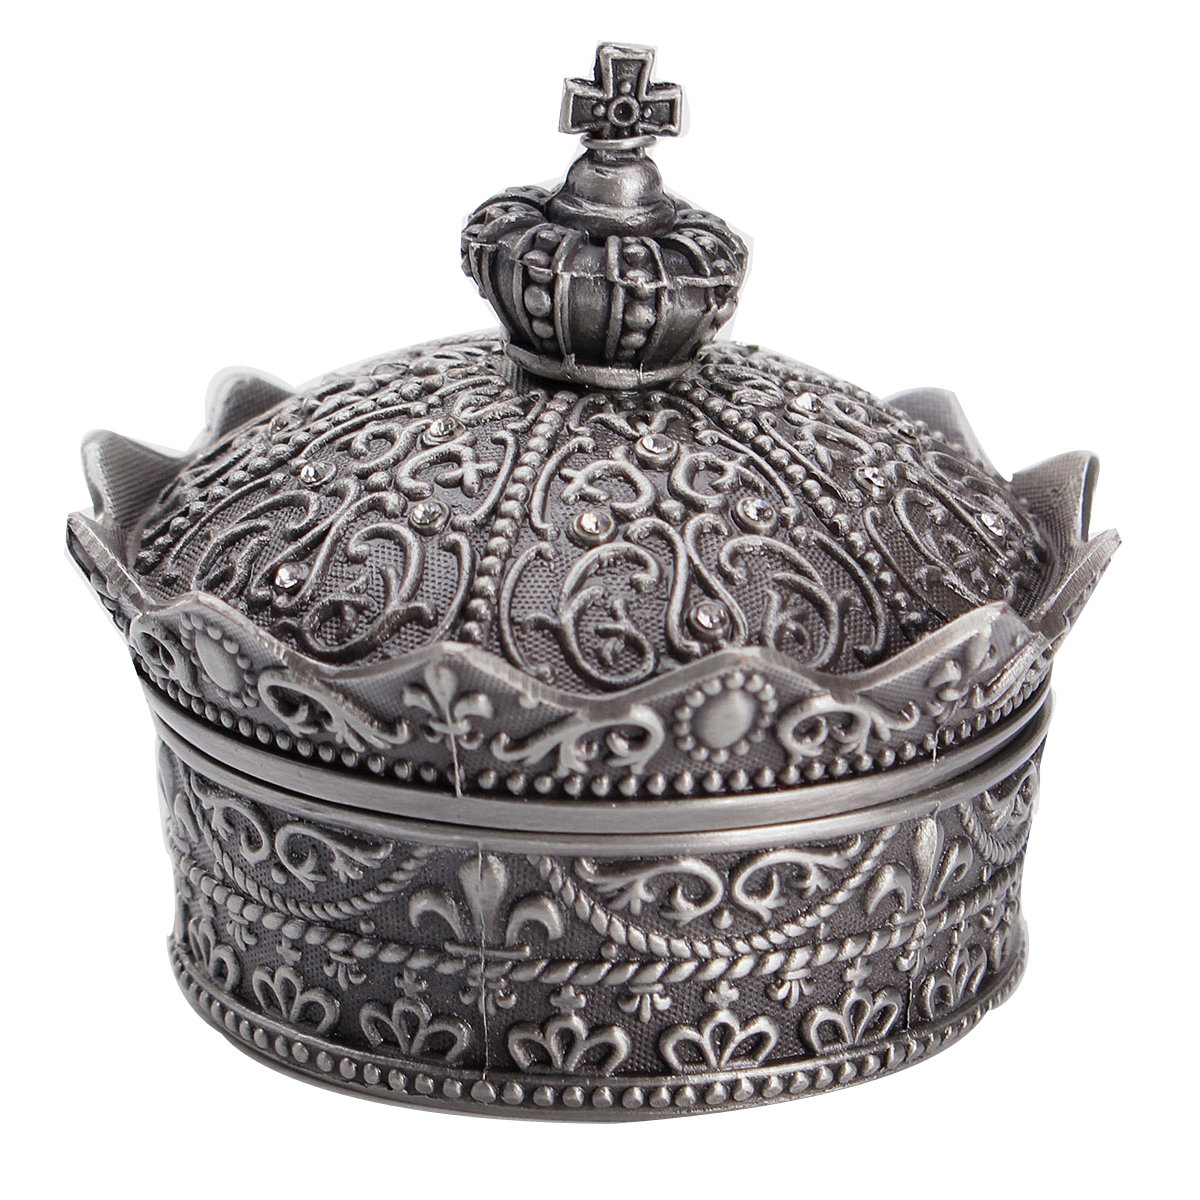 Carved Flower Crown Shaped Jewelry Box